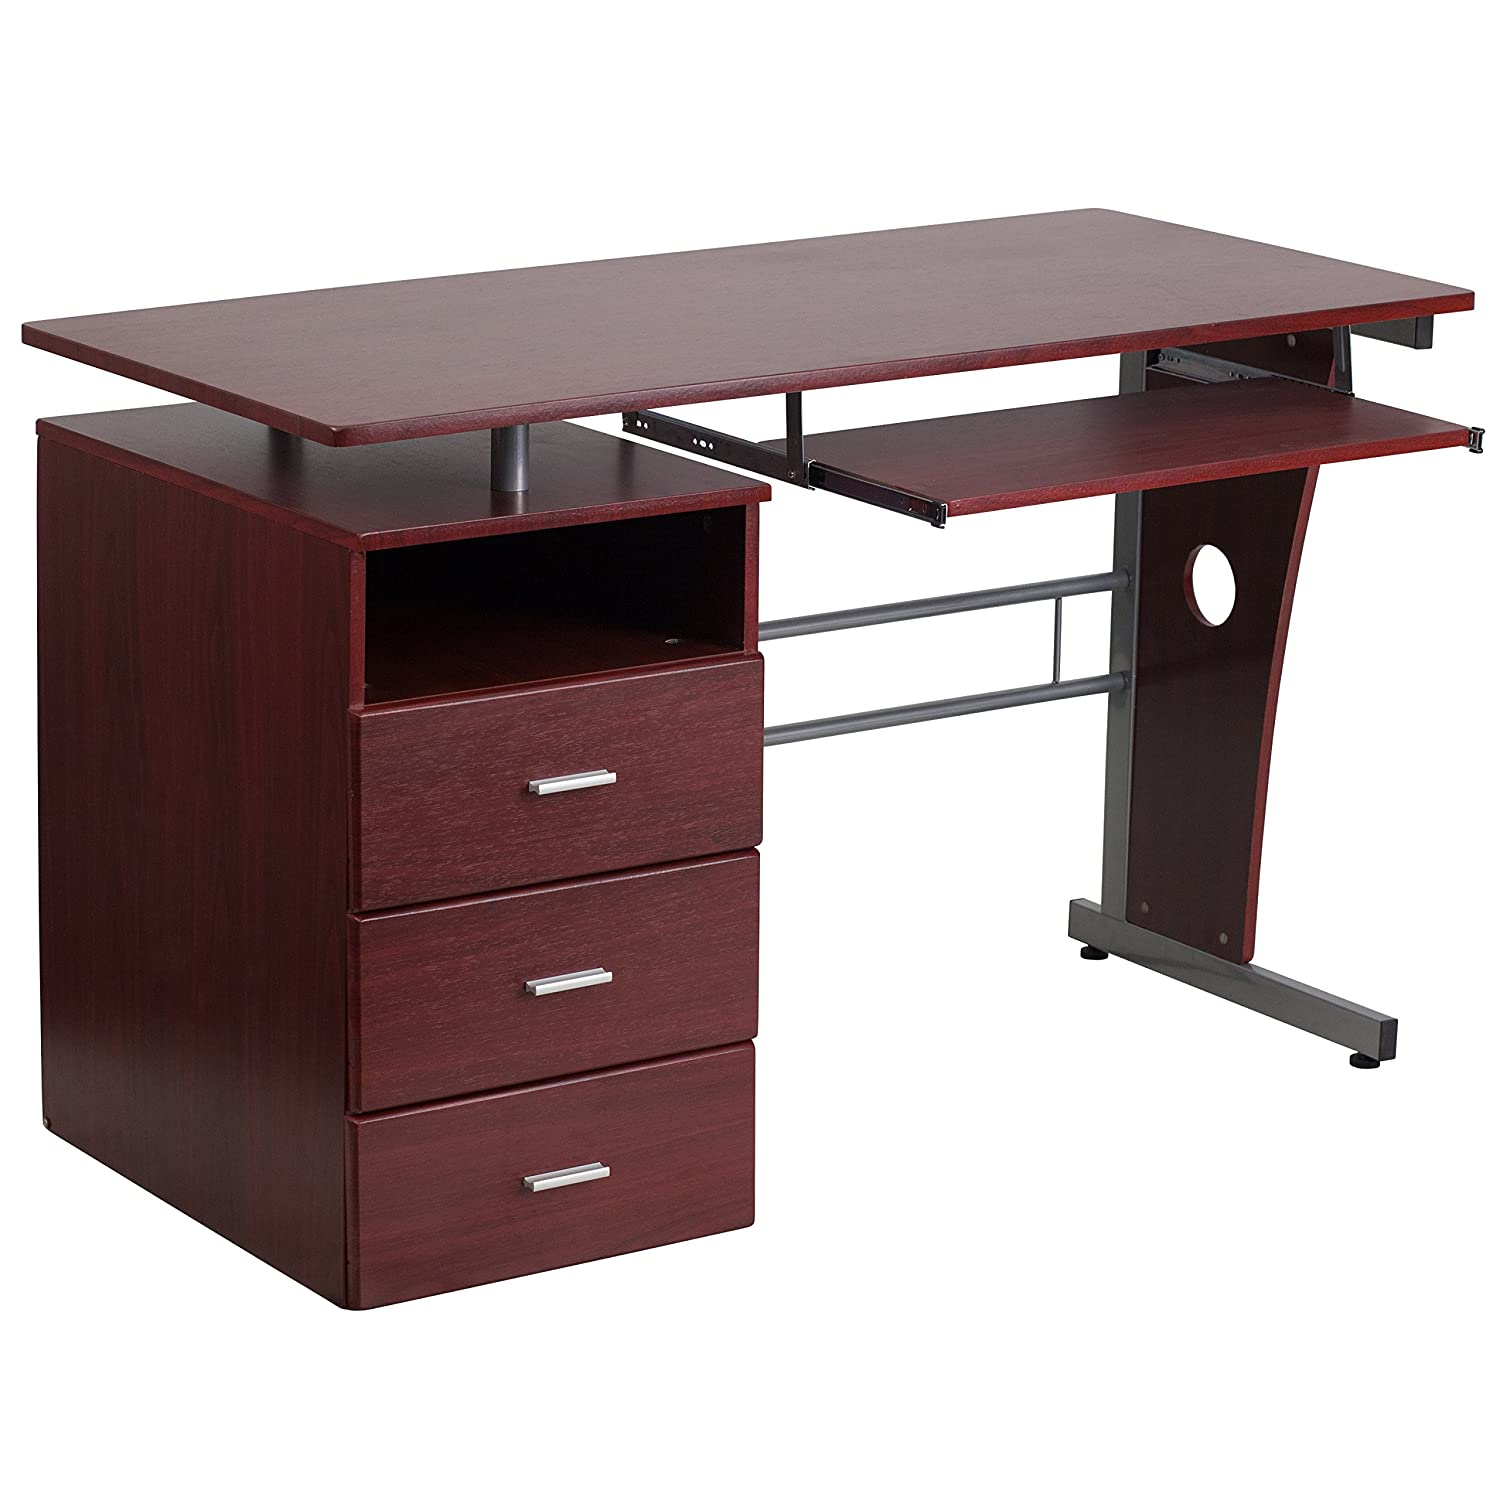 Amazon com flash furniture mahogany desk with three drawer pedestal and pull out keyboard tray kitchen dining